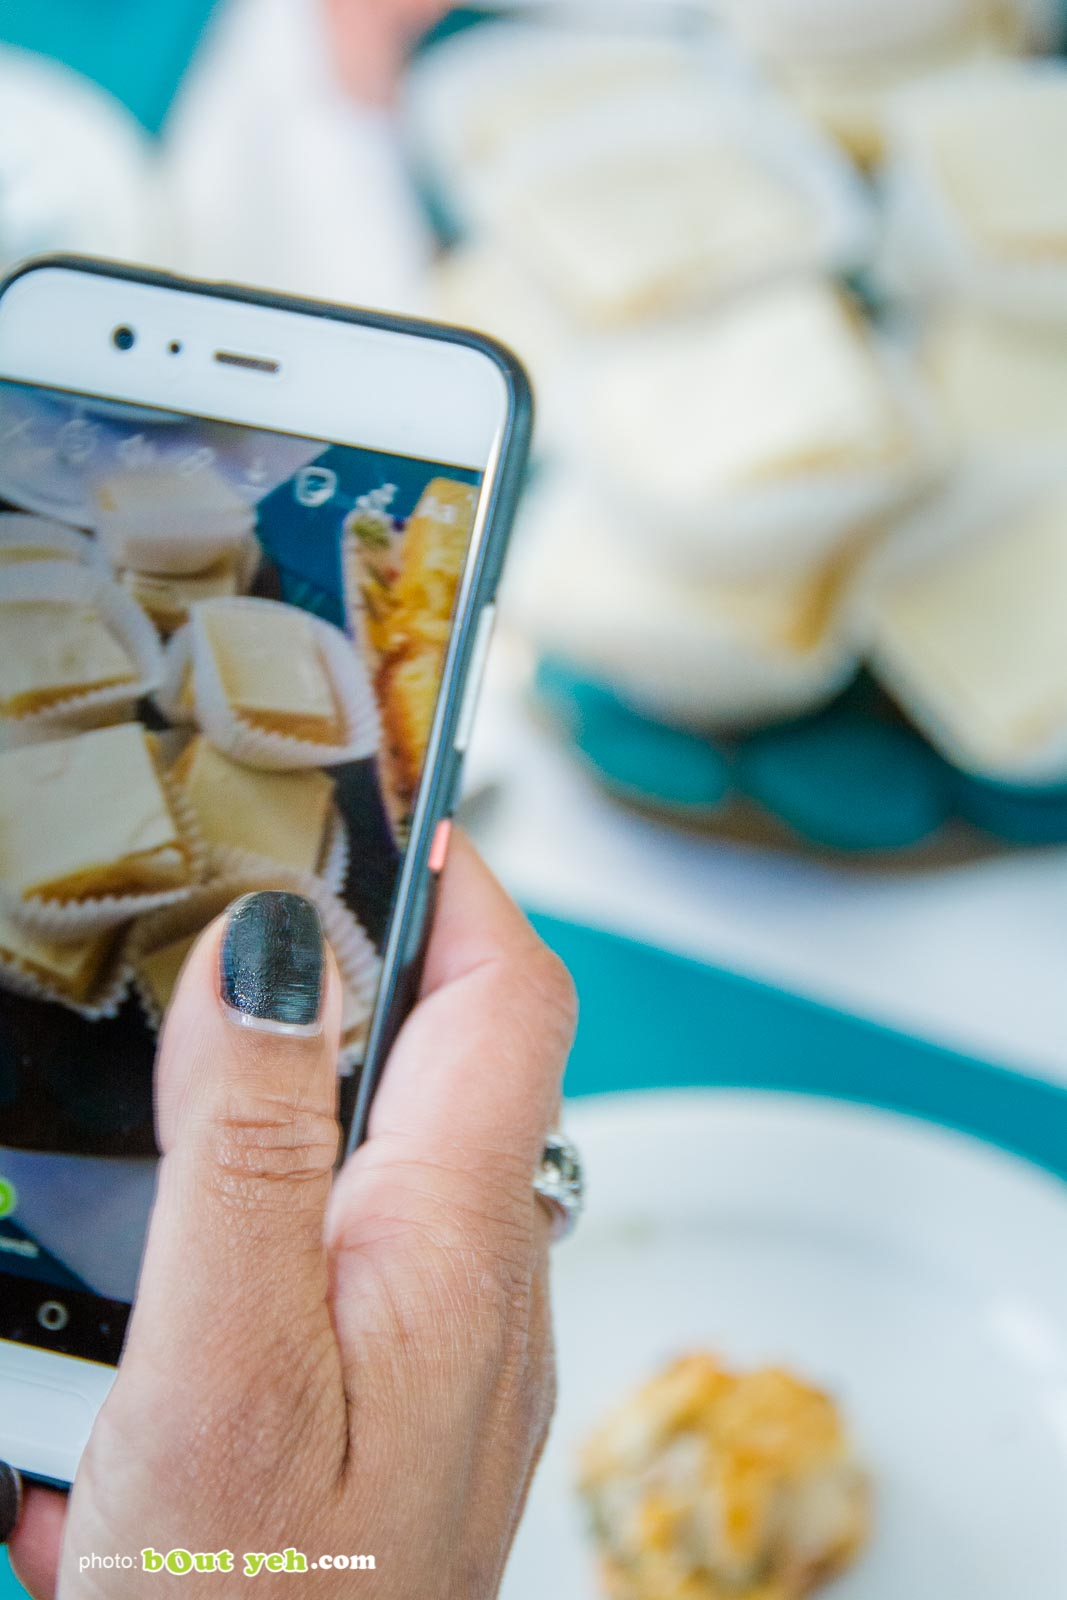 Hand on smartphone displaying photo of food at the Bout Yeh Brexit Mad Hatters Tea Party photo 9266 - Bout Yeh photographers Belfast